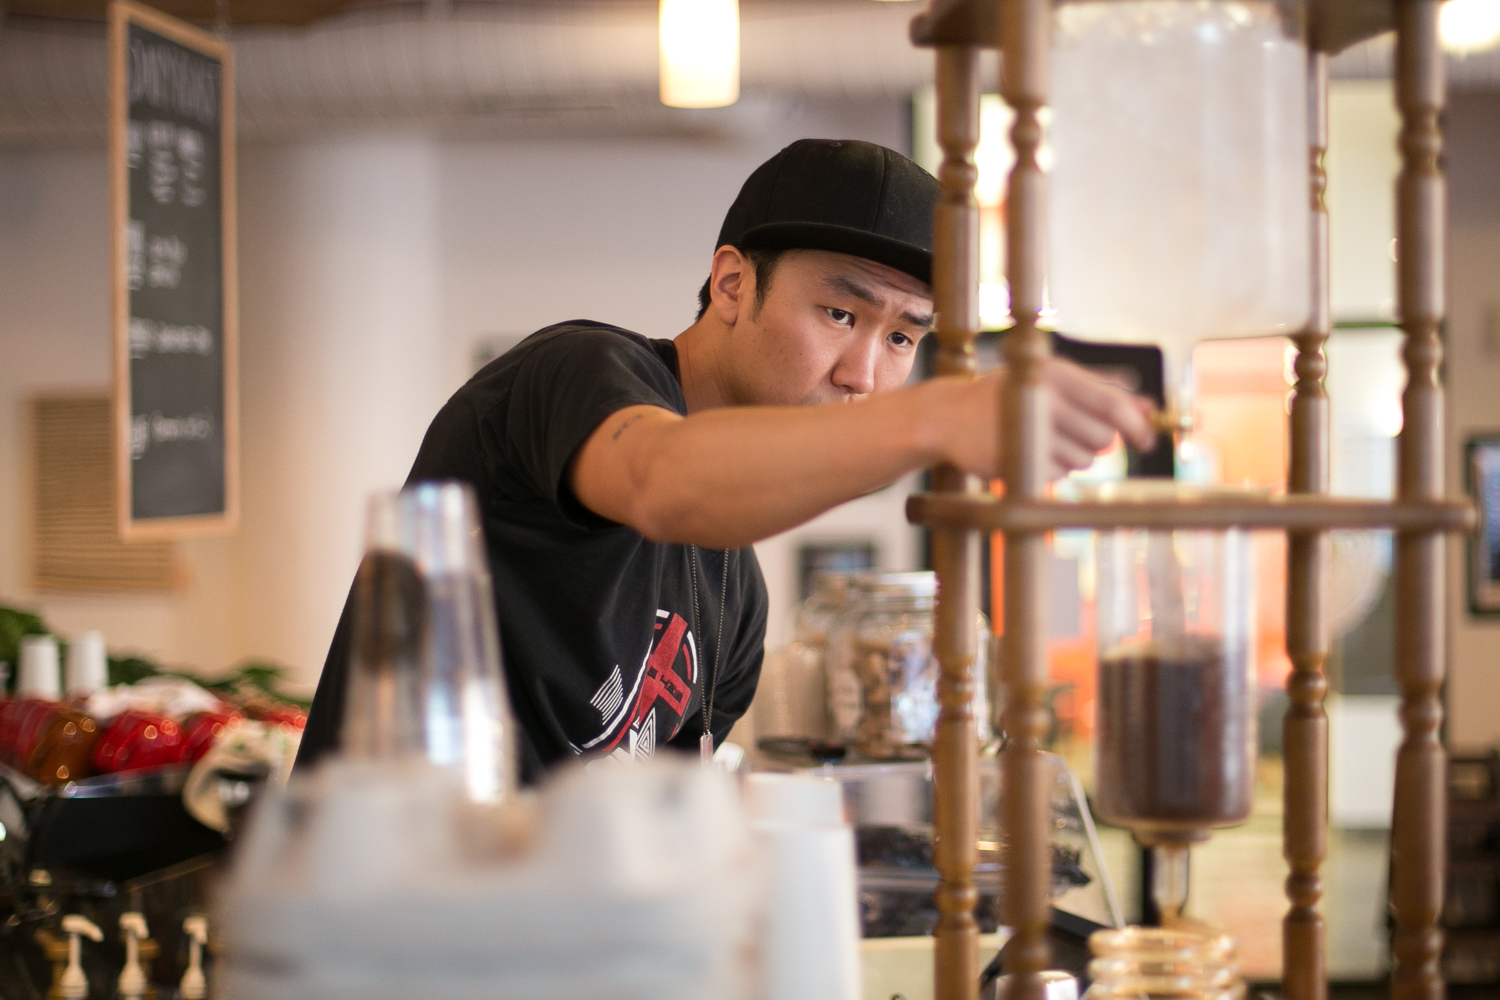 Thomas sets the drip speed on the Yama tower at Tamp & Tap. On a Monday morning, it's Thomas to the rescue.